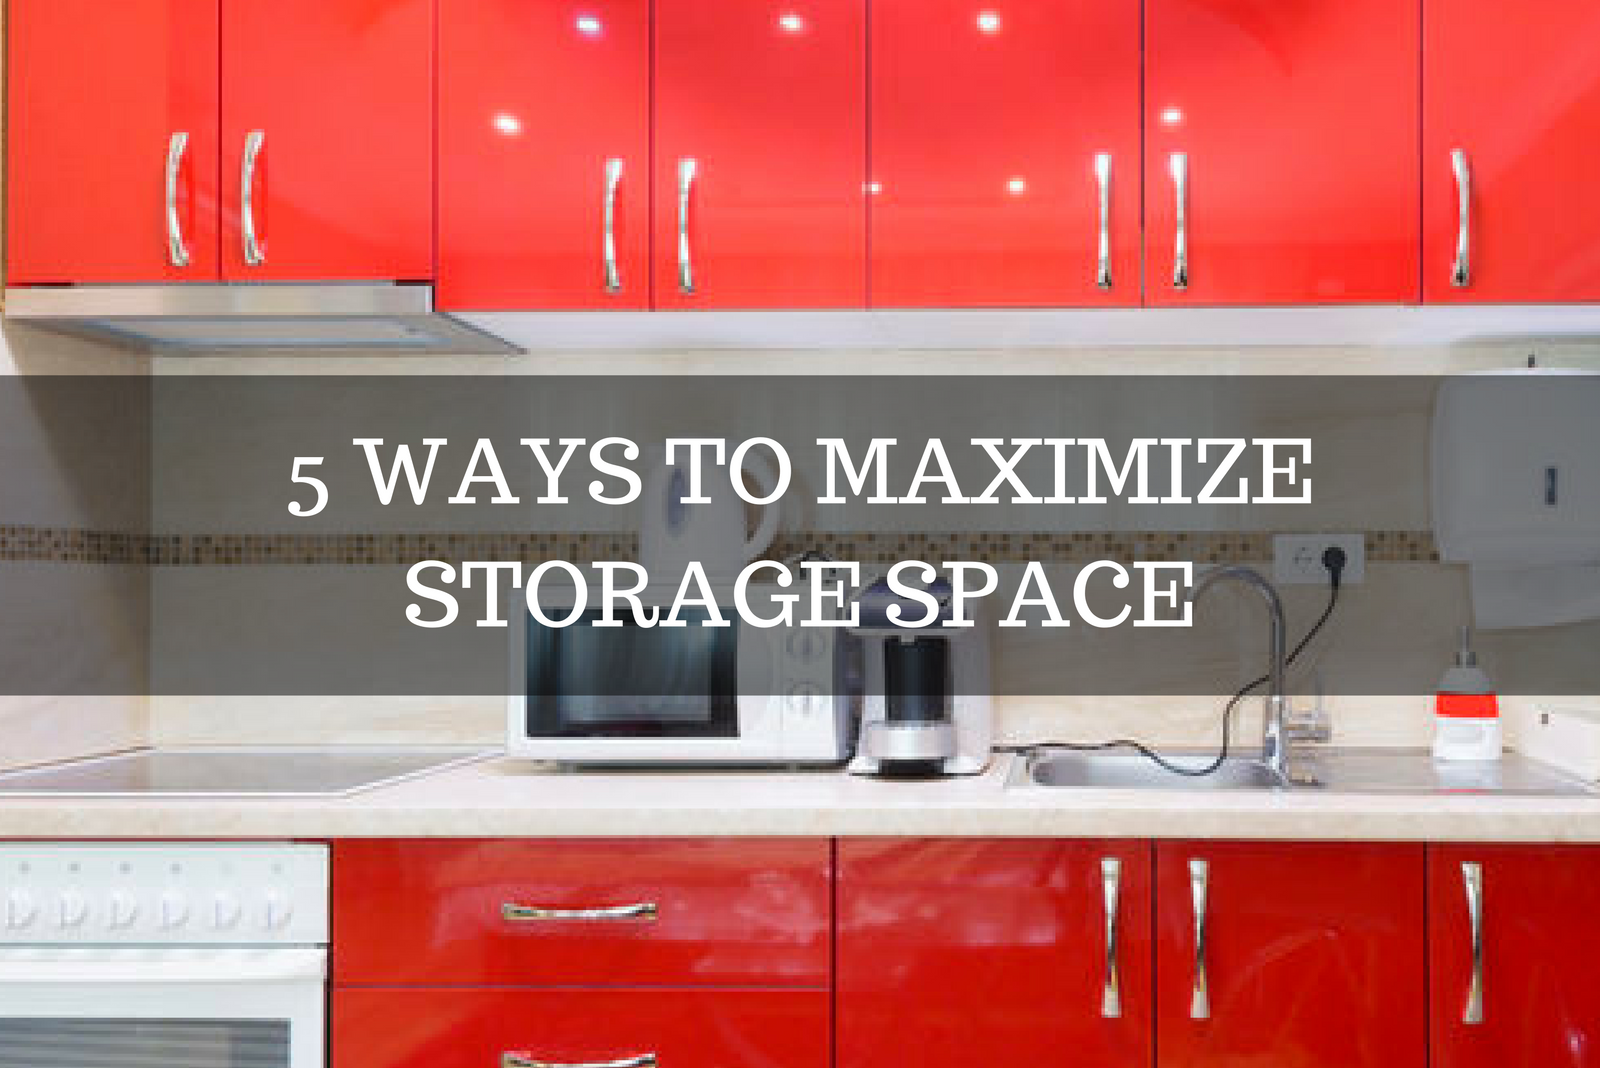 5 Ways to Maximize Storage Space Of Your Ocean Edge Condo